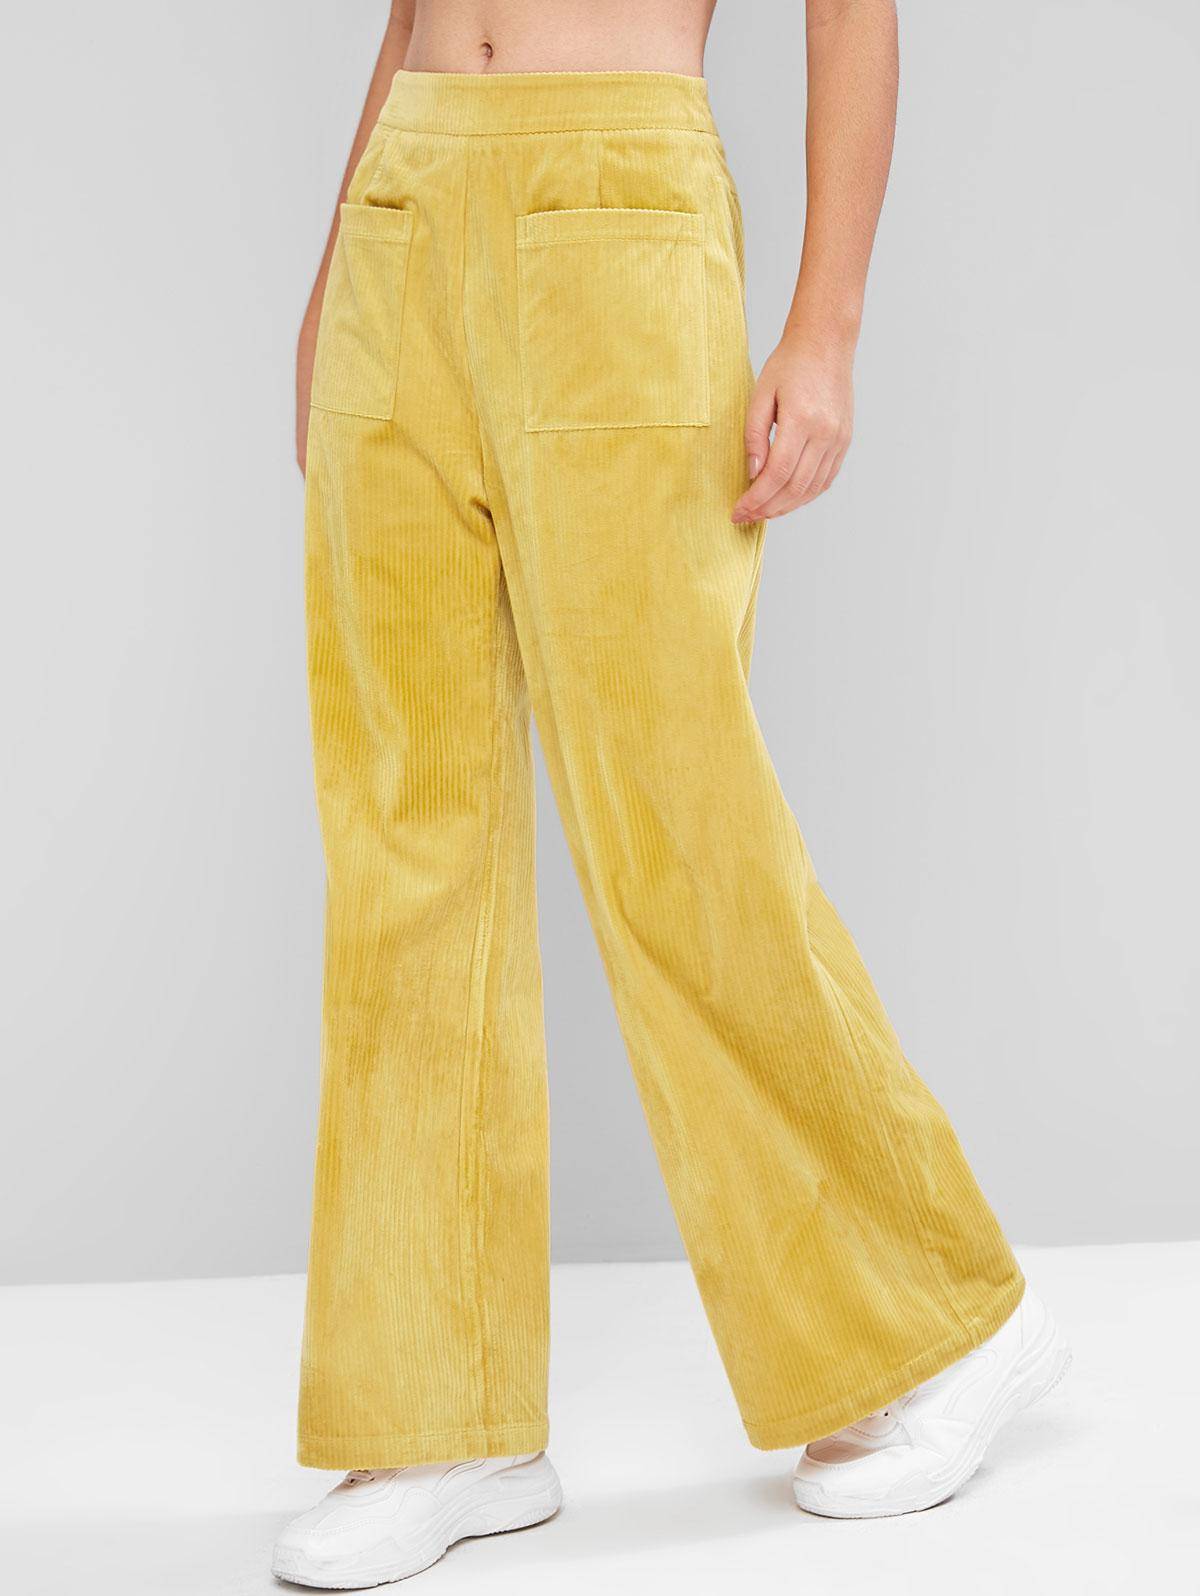 ZAFUL Pockets High Waisted Corduroy Wide Leg Pants